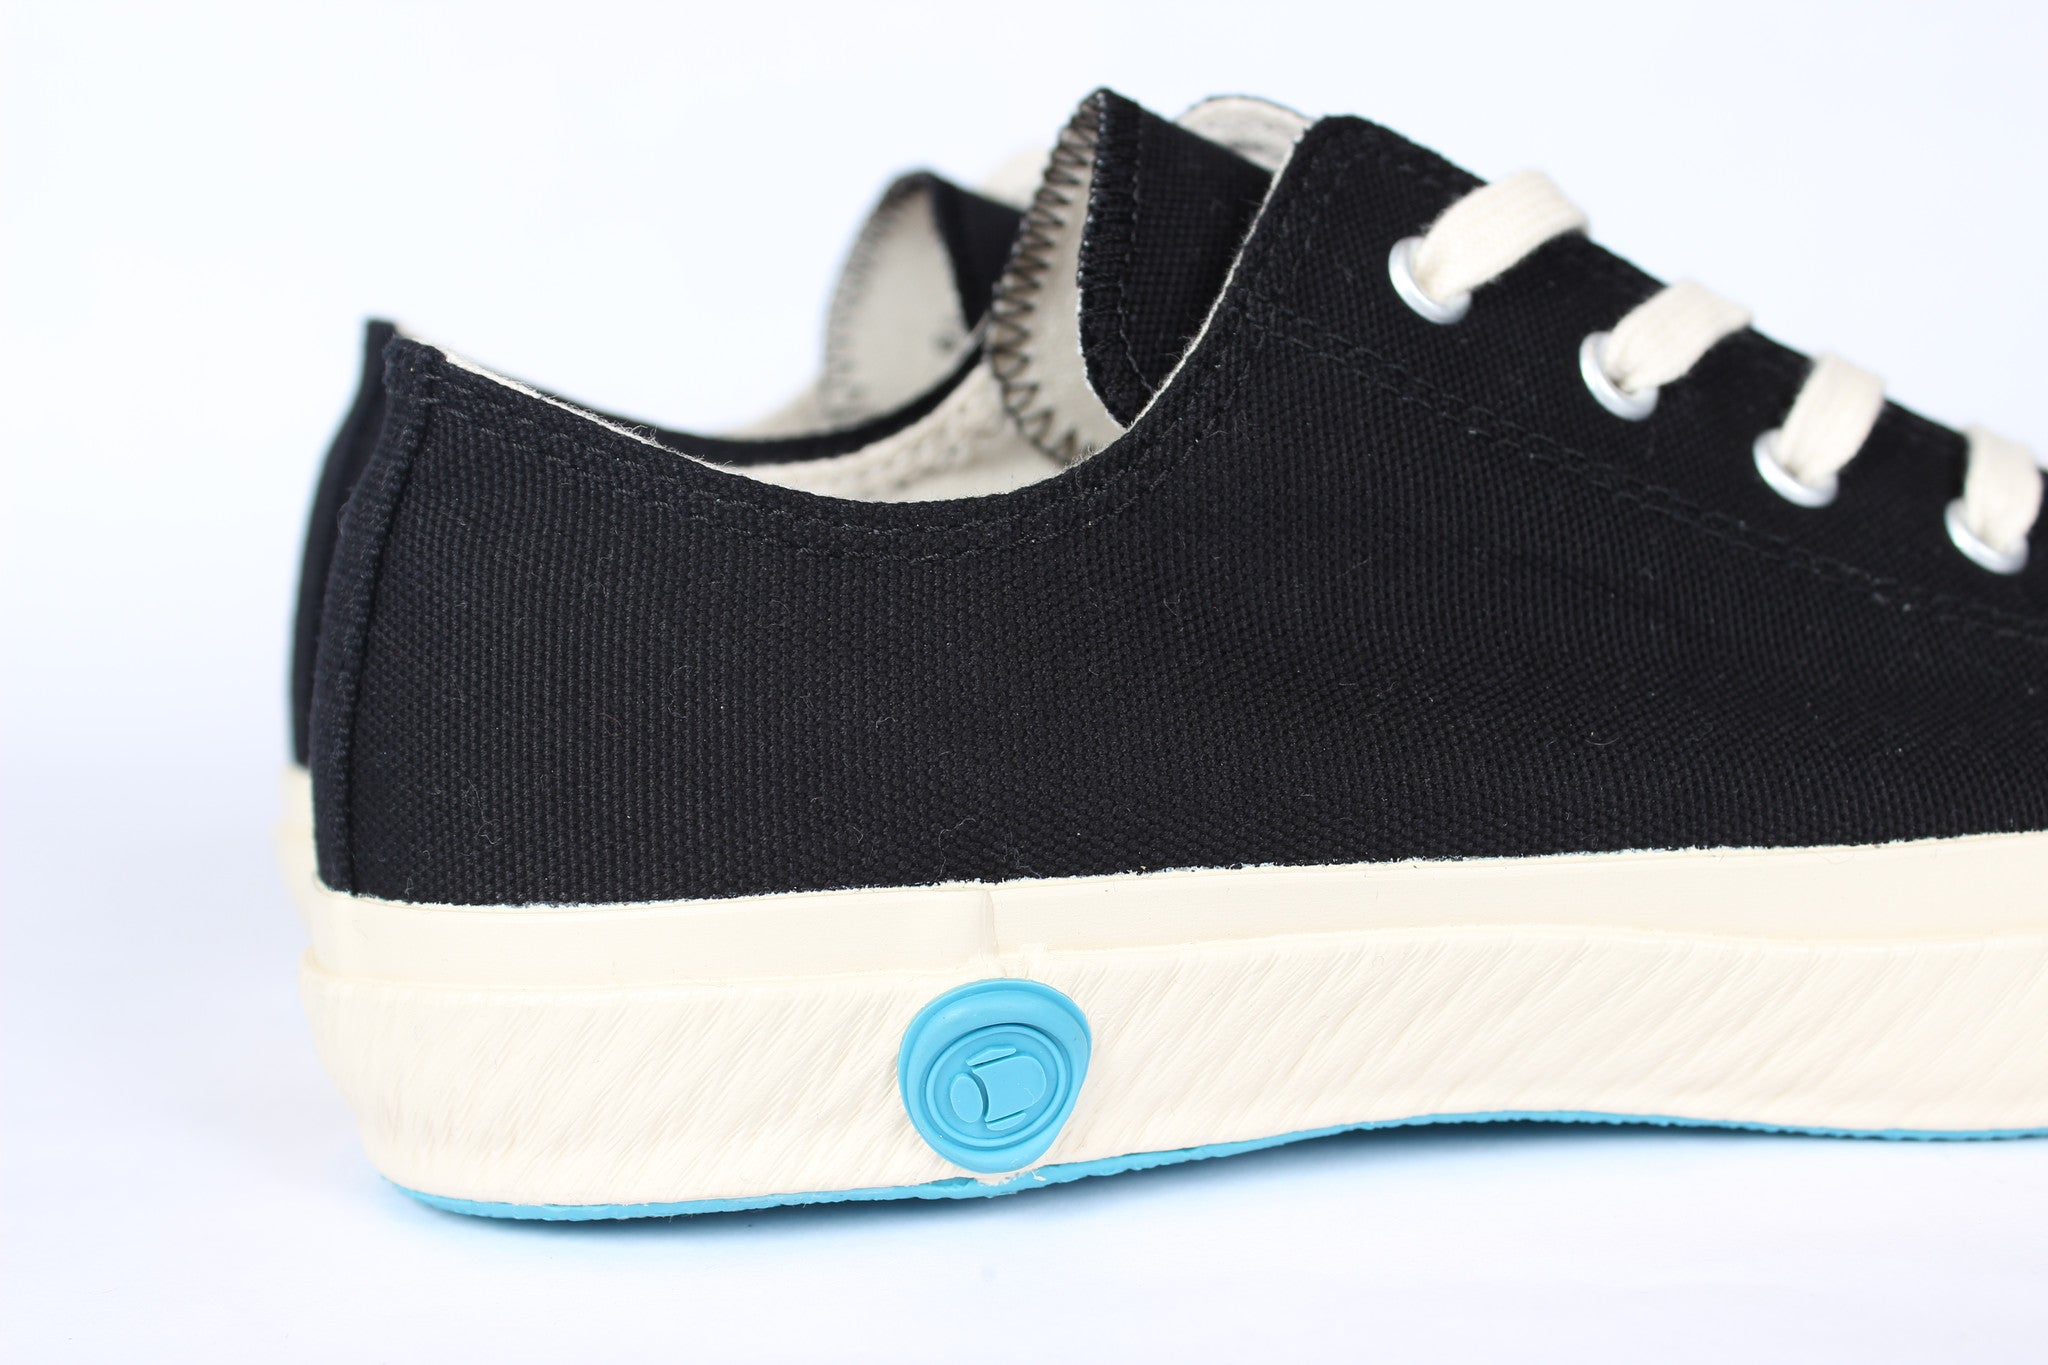 LOW TOP CANVAS SHOES BLACK - COSMOTOG